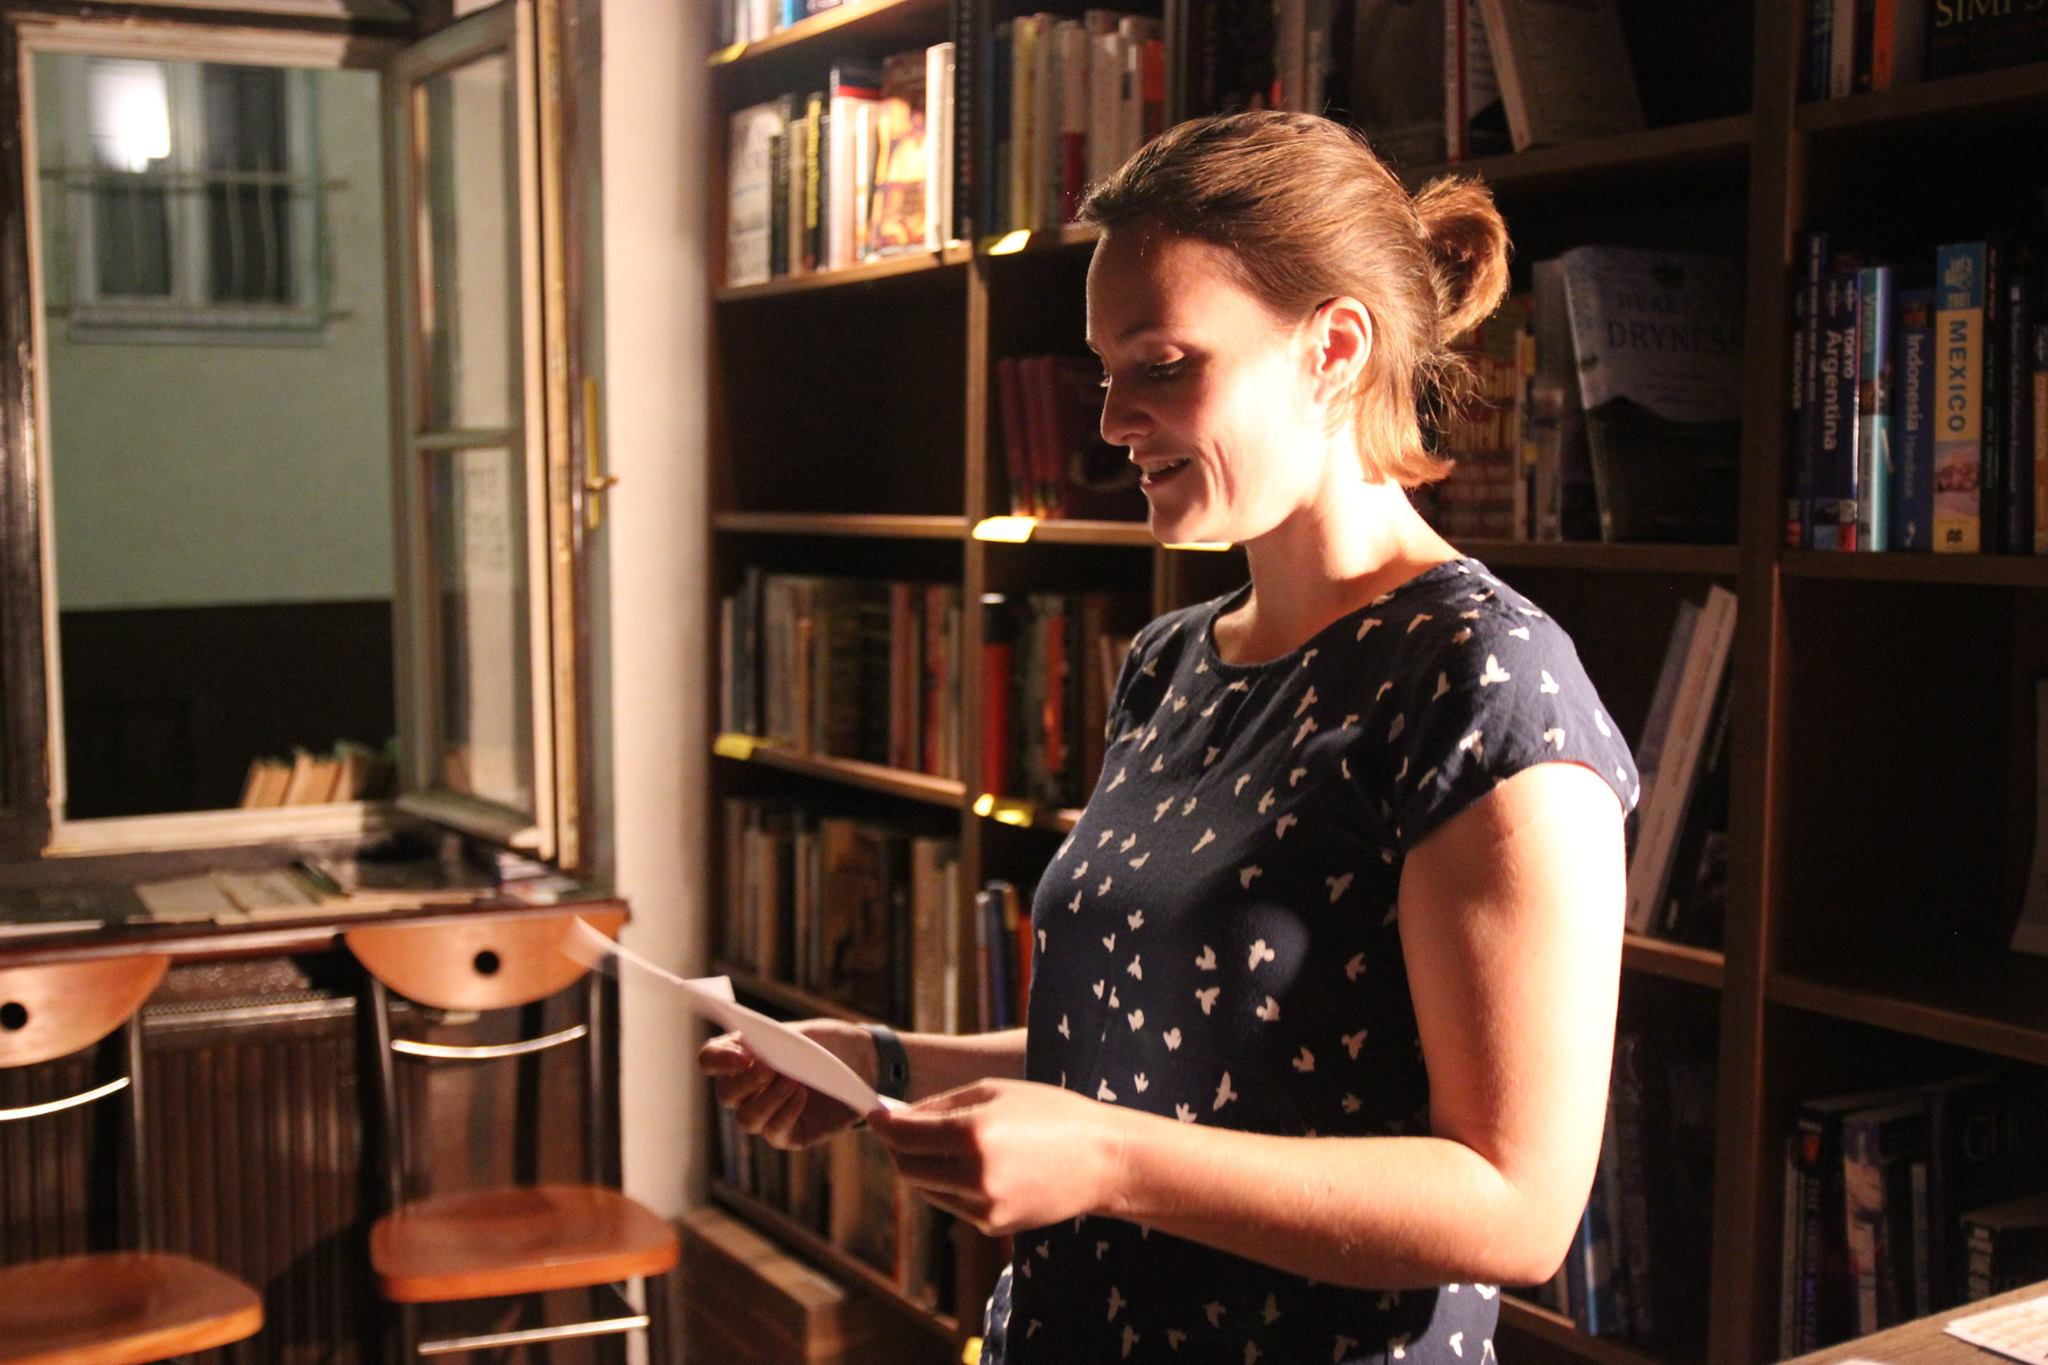 gabrielle clover reading her poem